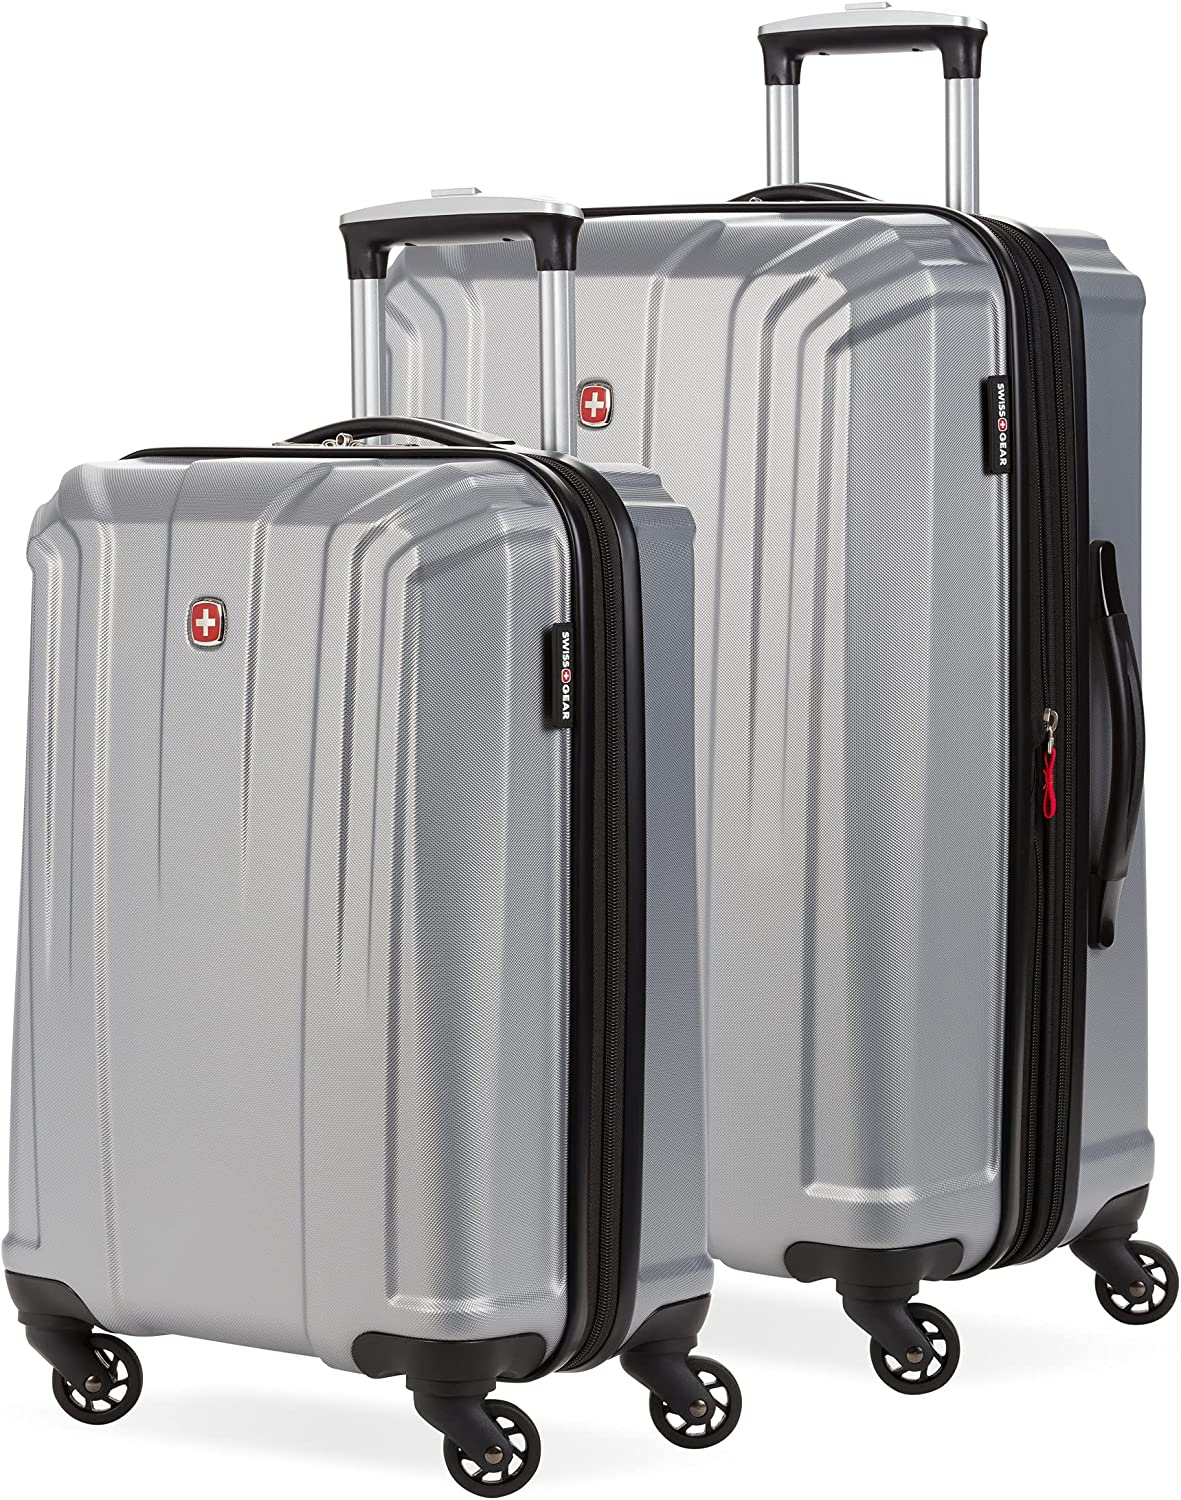 SwissGear 3750 Max 85% OFF Hardside Expandable Spinner New Orleans Mall Luggage Wheels with